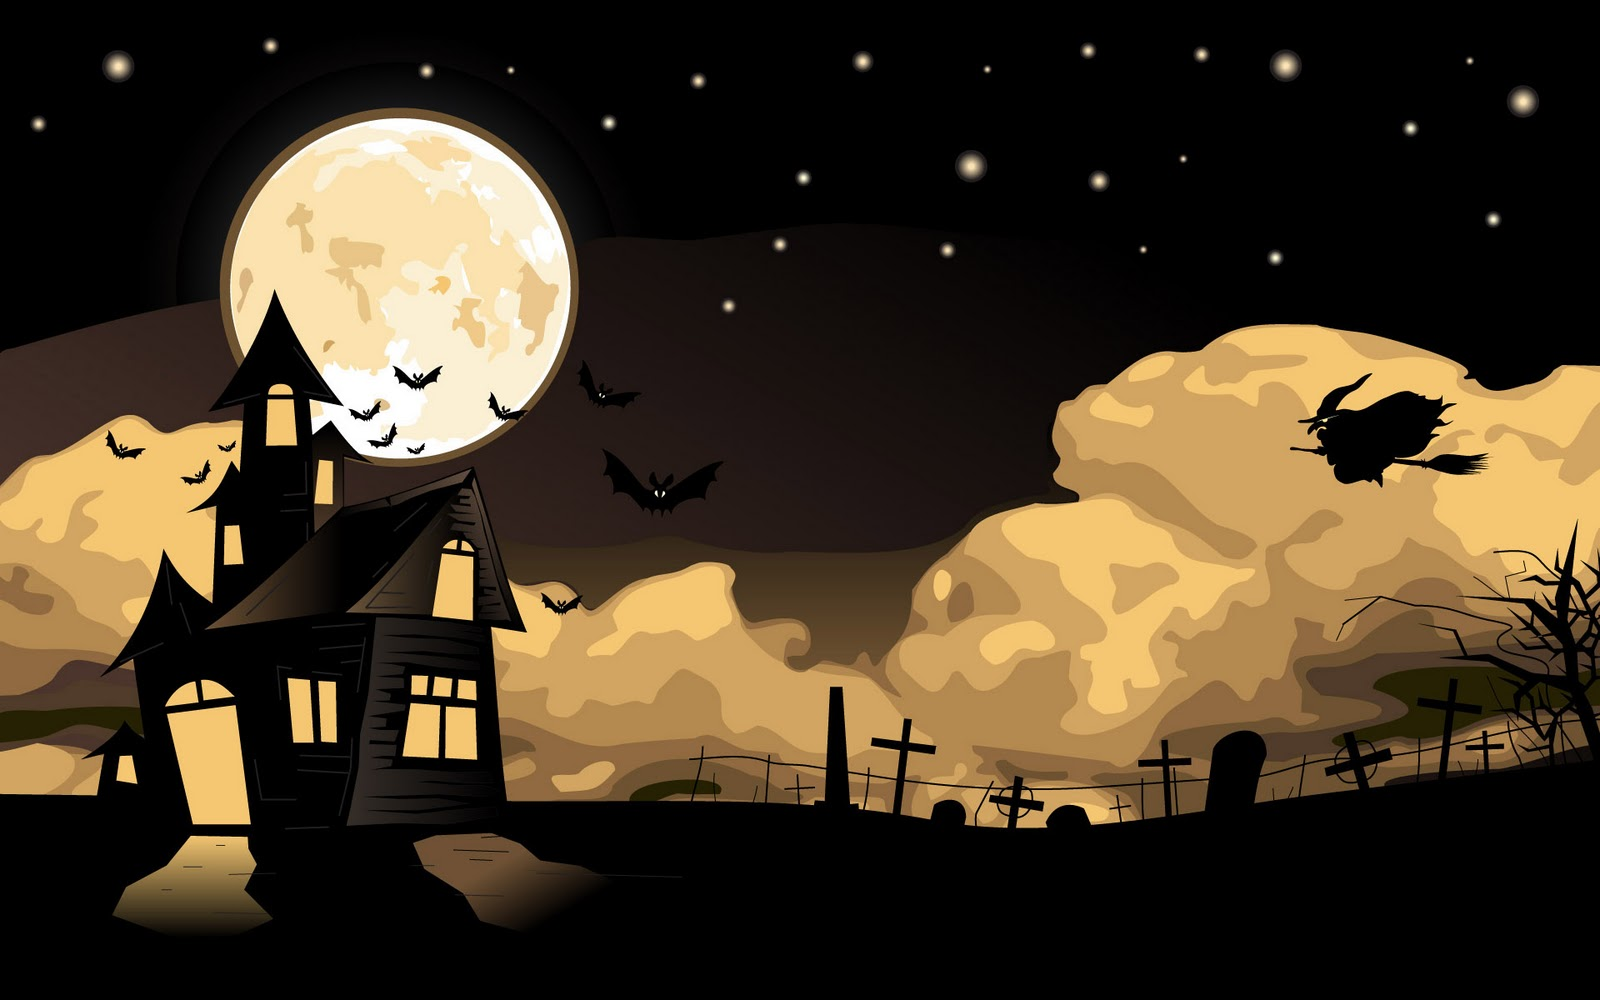 Good Wallpaper Halloween Screensaver - halloween-screensavers-21646-22186-hd-wallpapers  Snapshot_152118.jpg